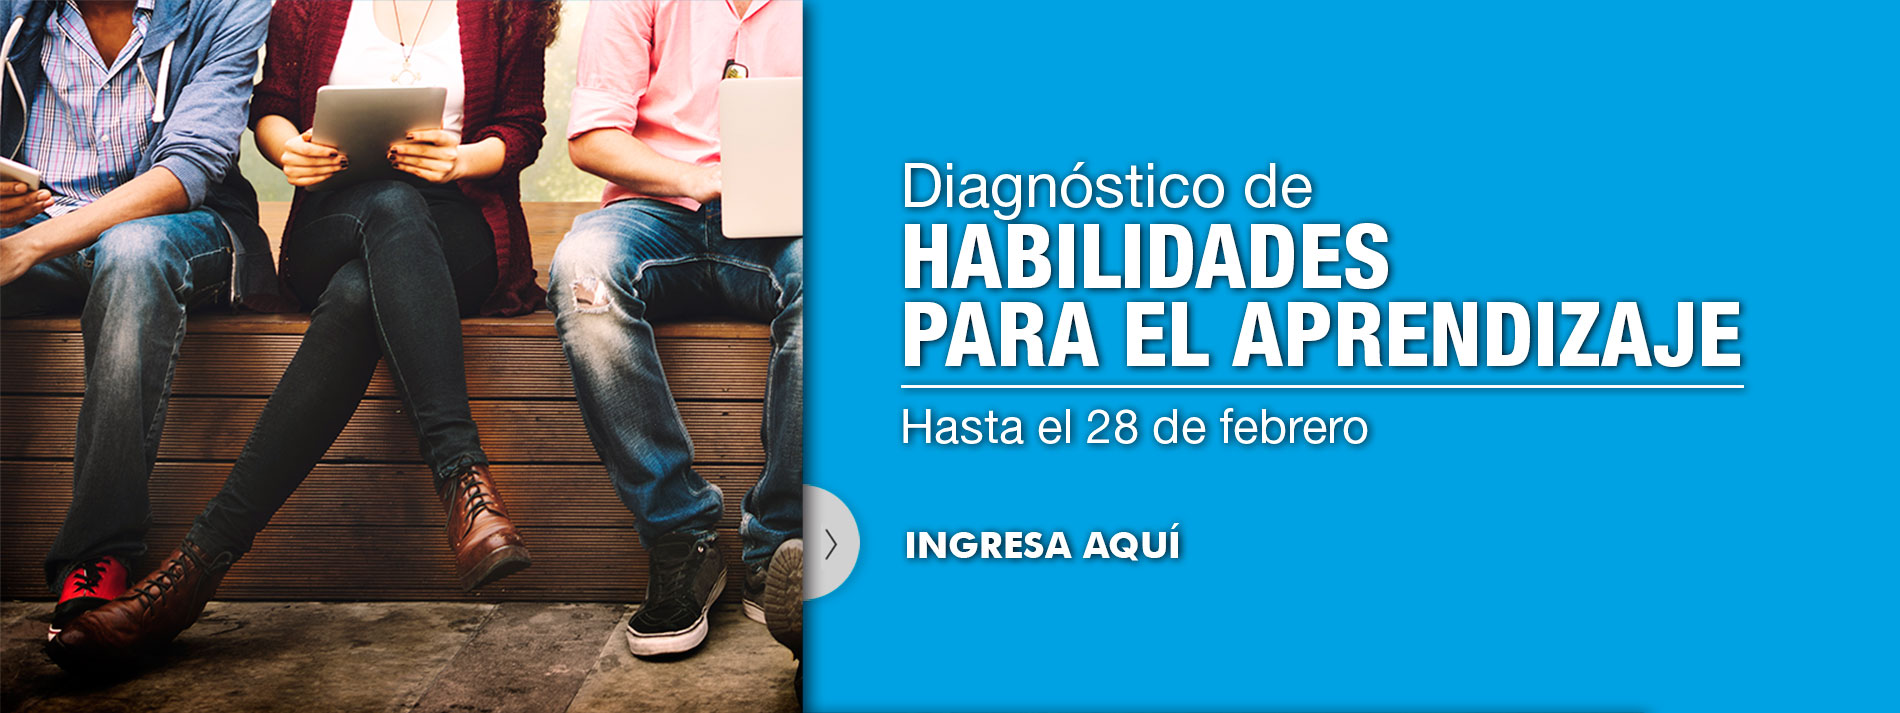 test diagnostico habilidades